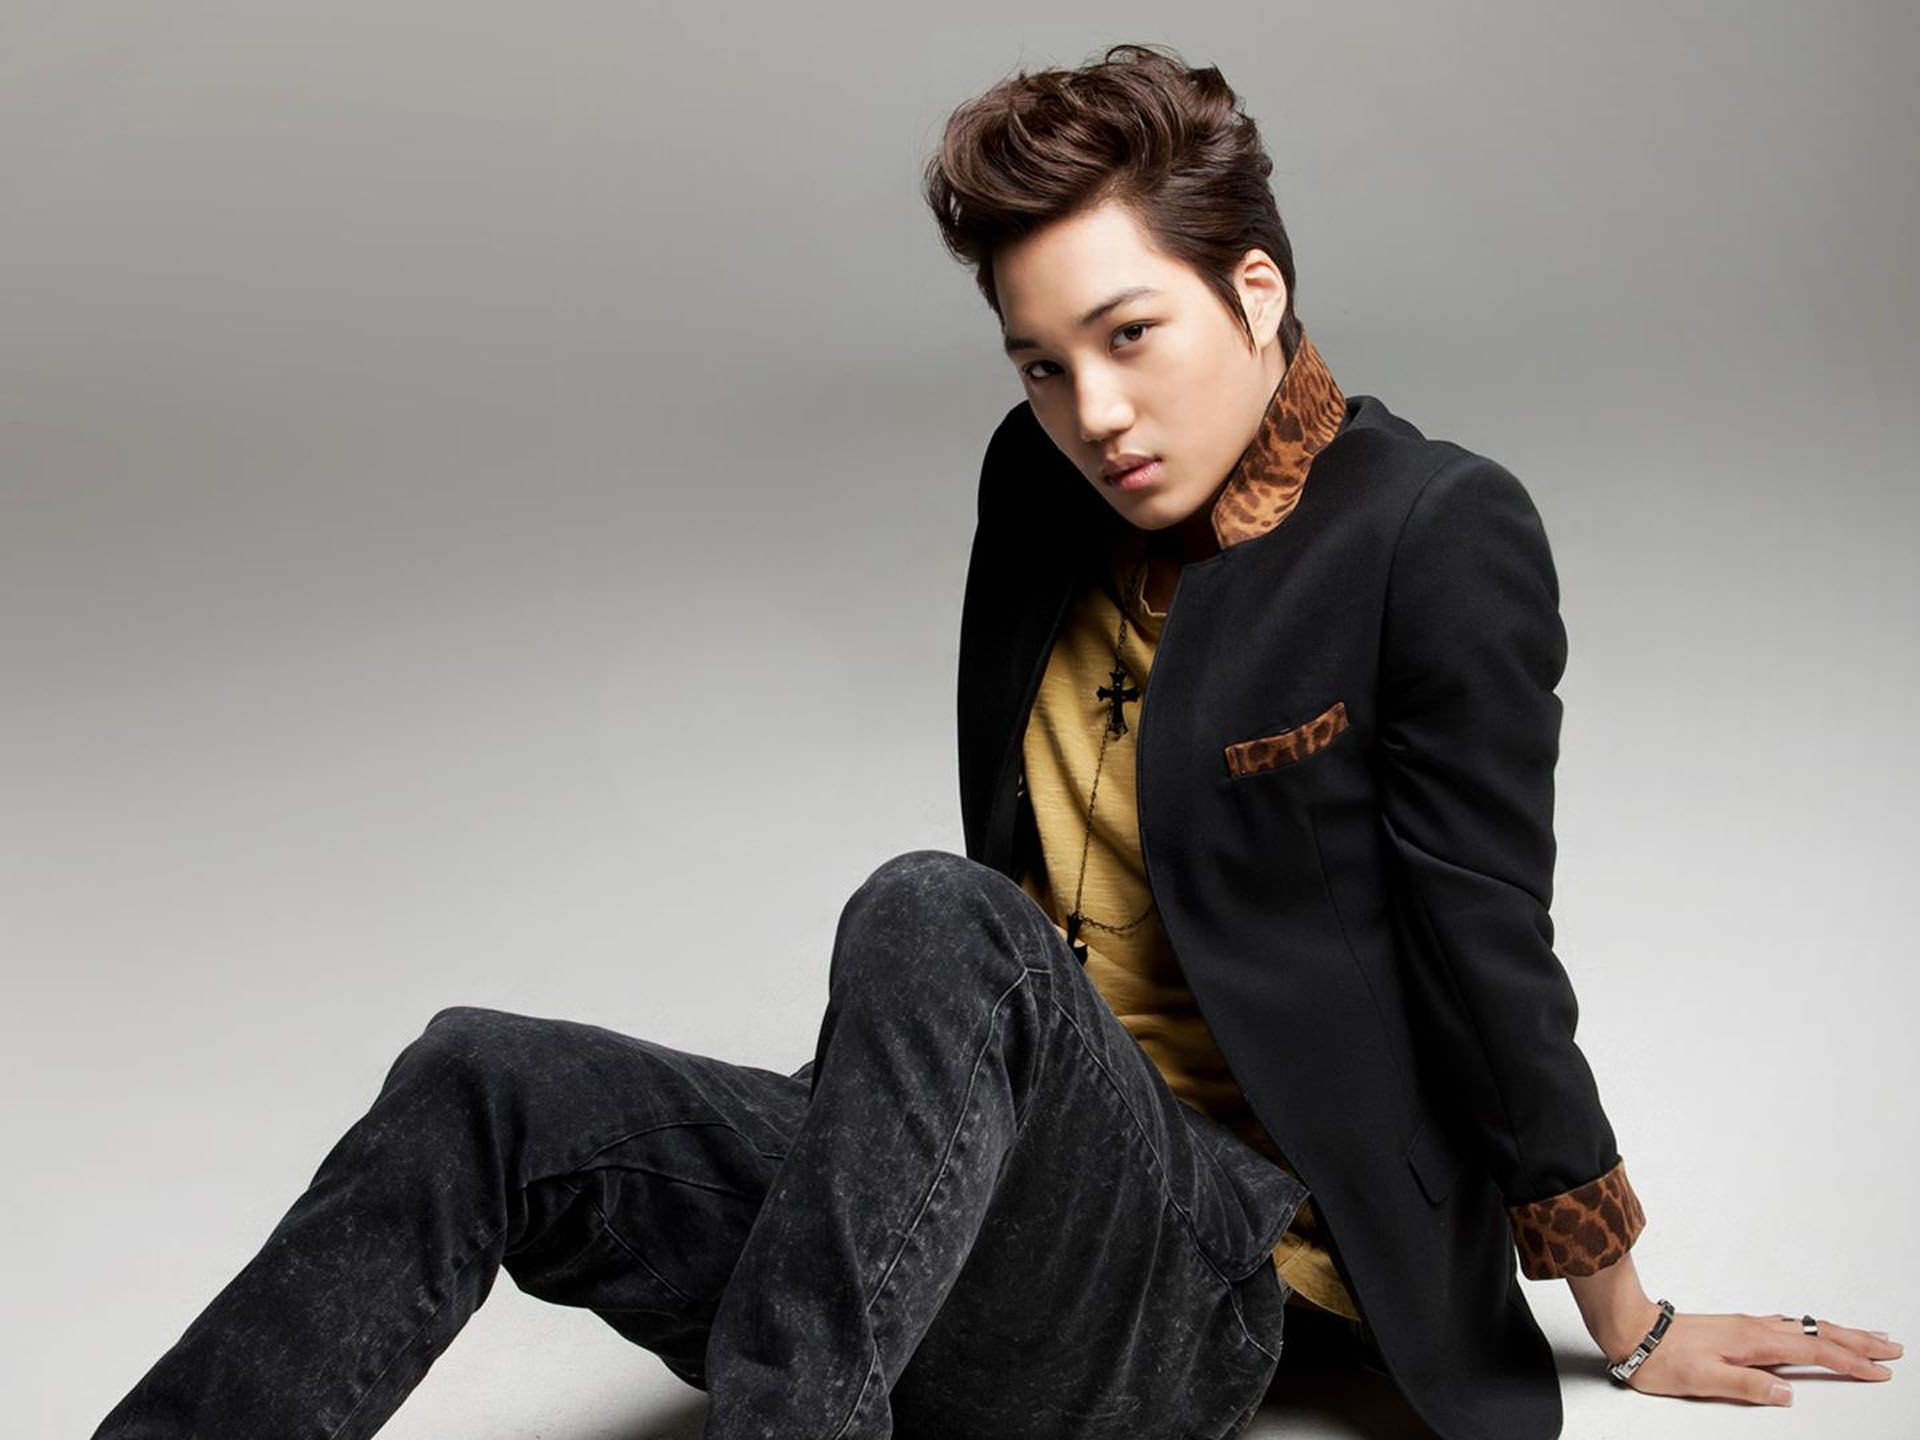 HD Wallpaper and background photos of ♥Kai♥ for fans of KAI (EXO-K) images.